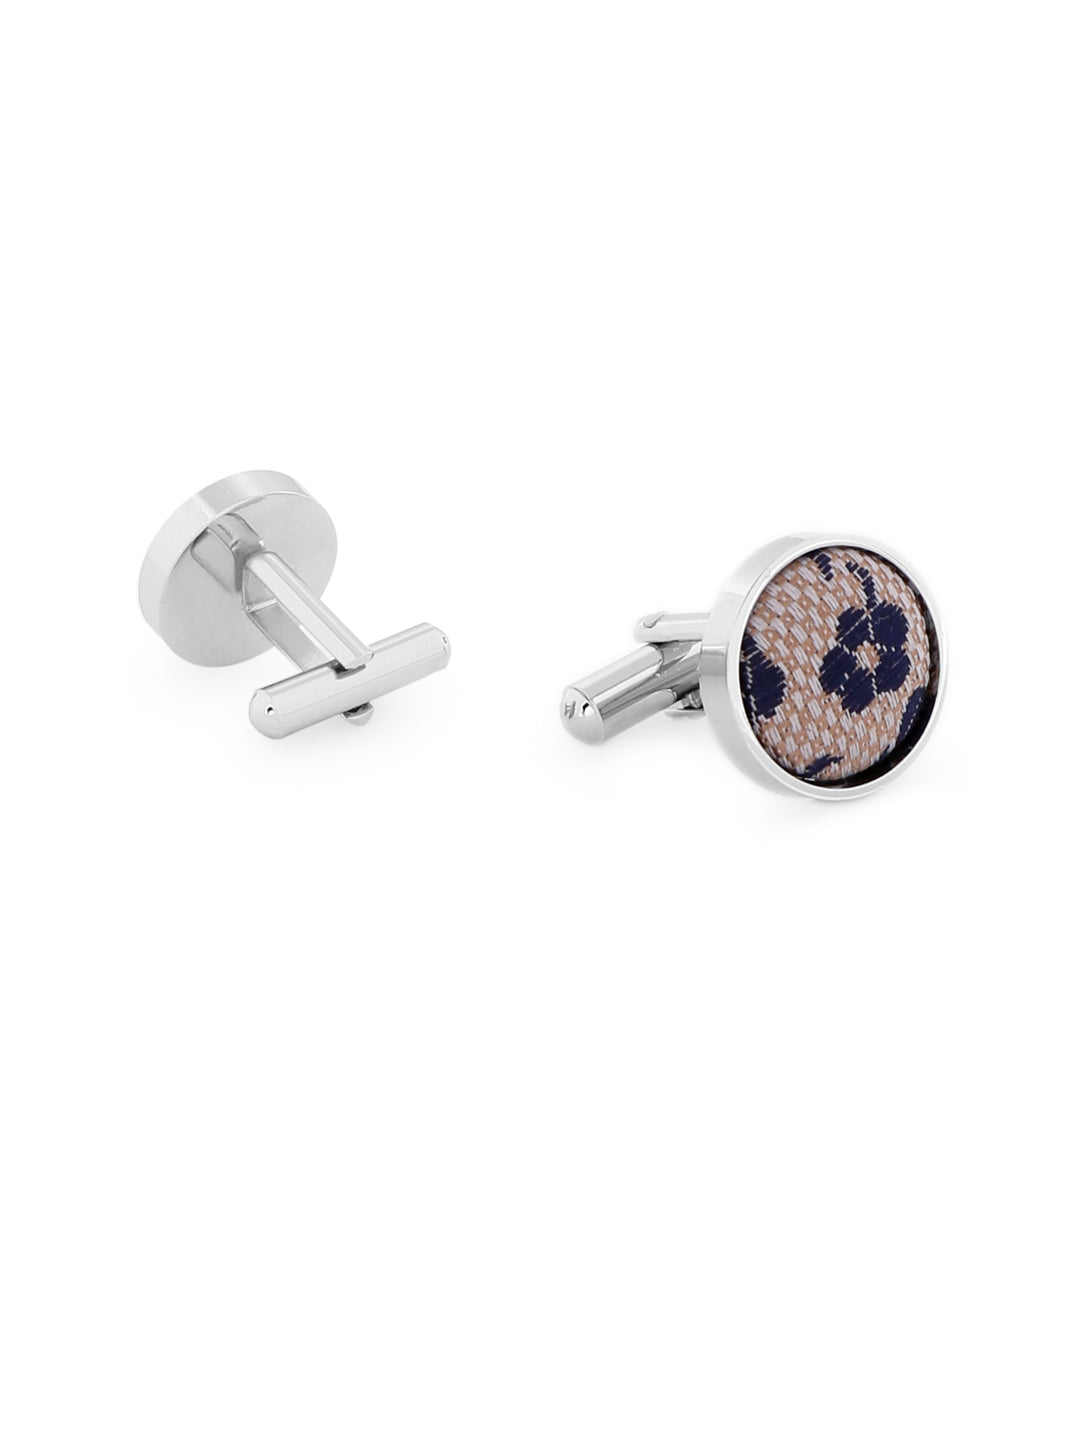 ZIDO Tie Cufflink Combos for Men TNC169